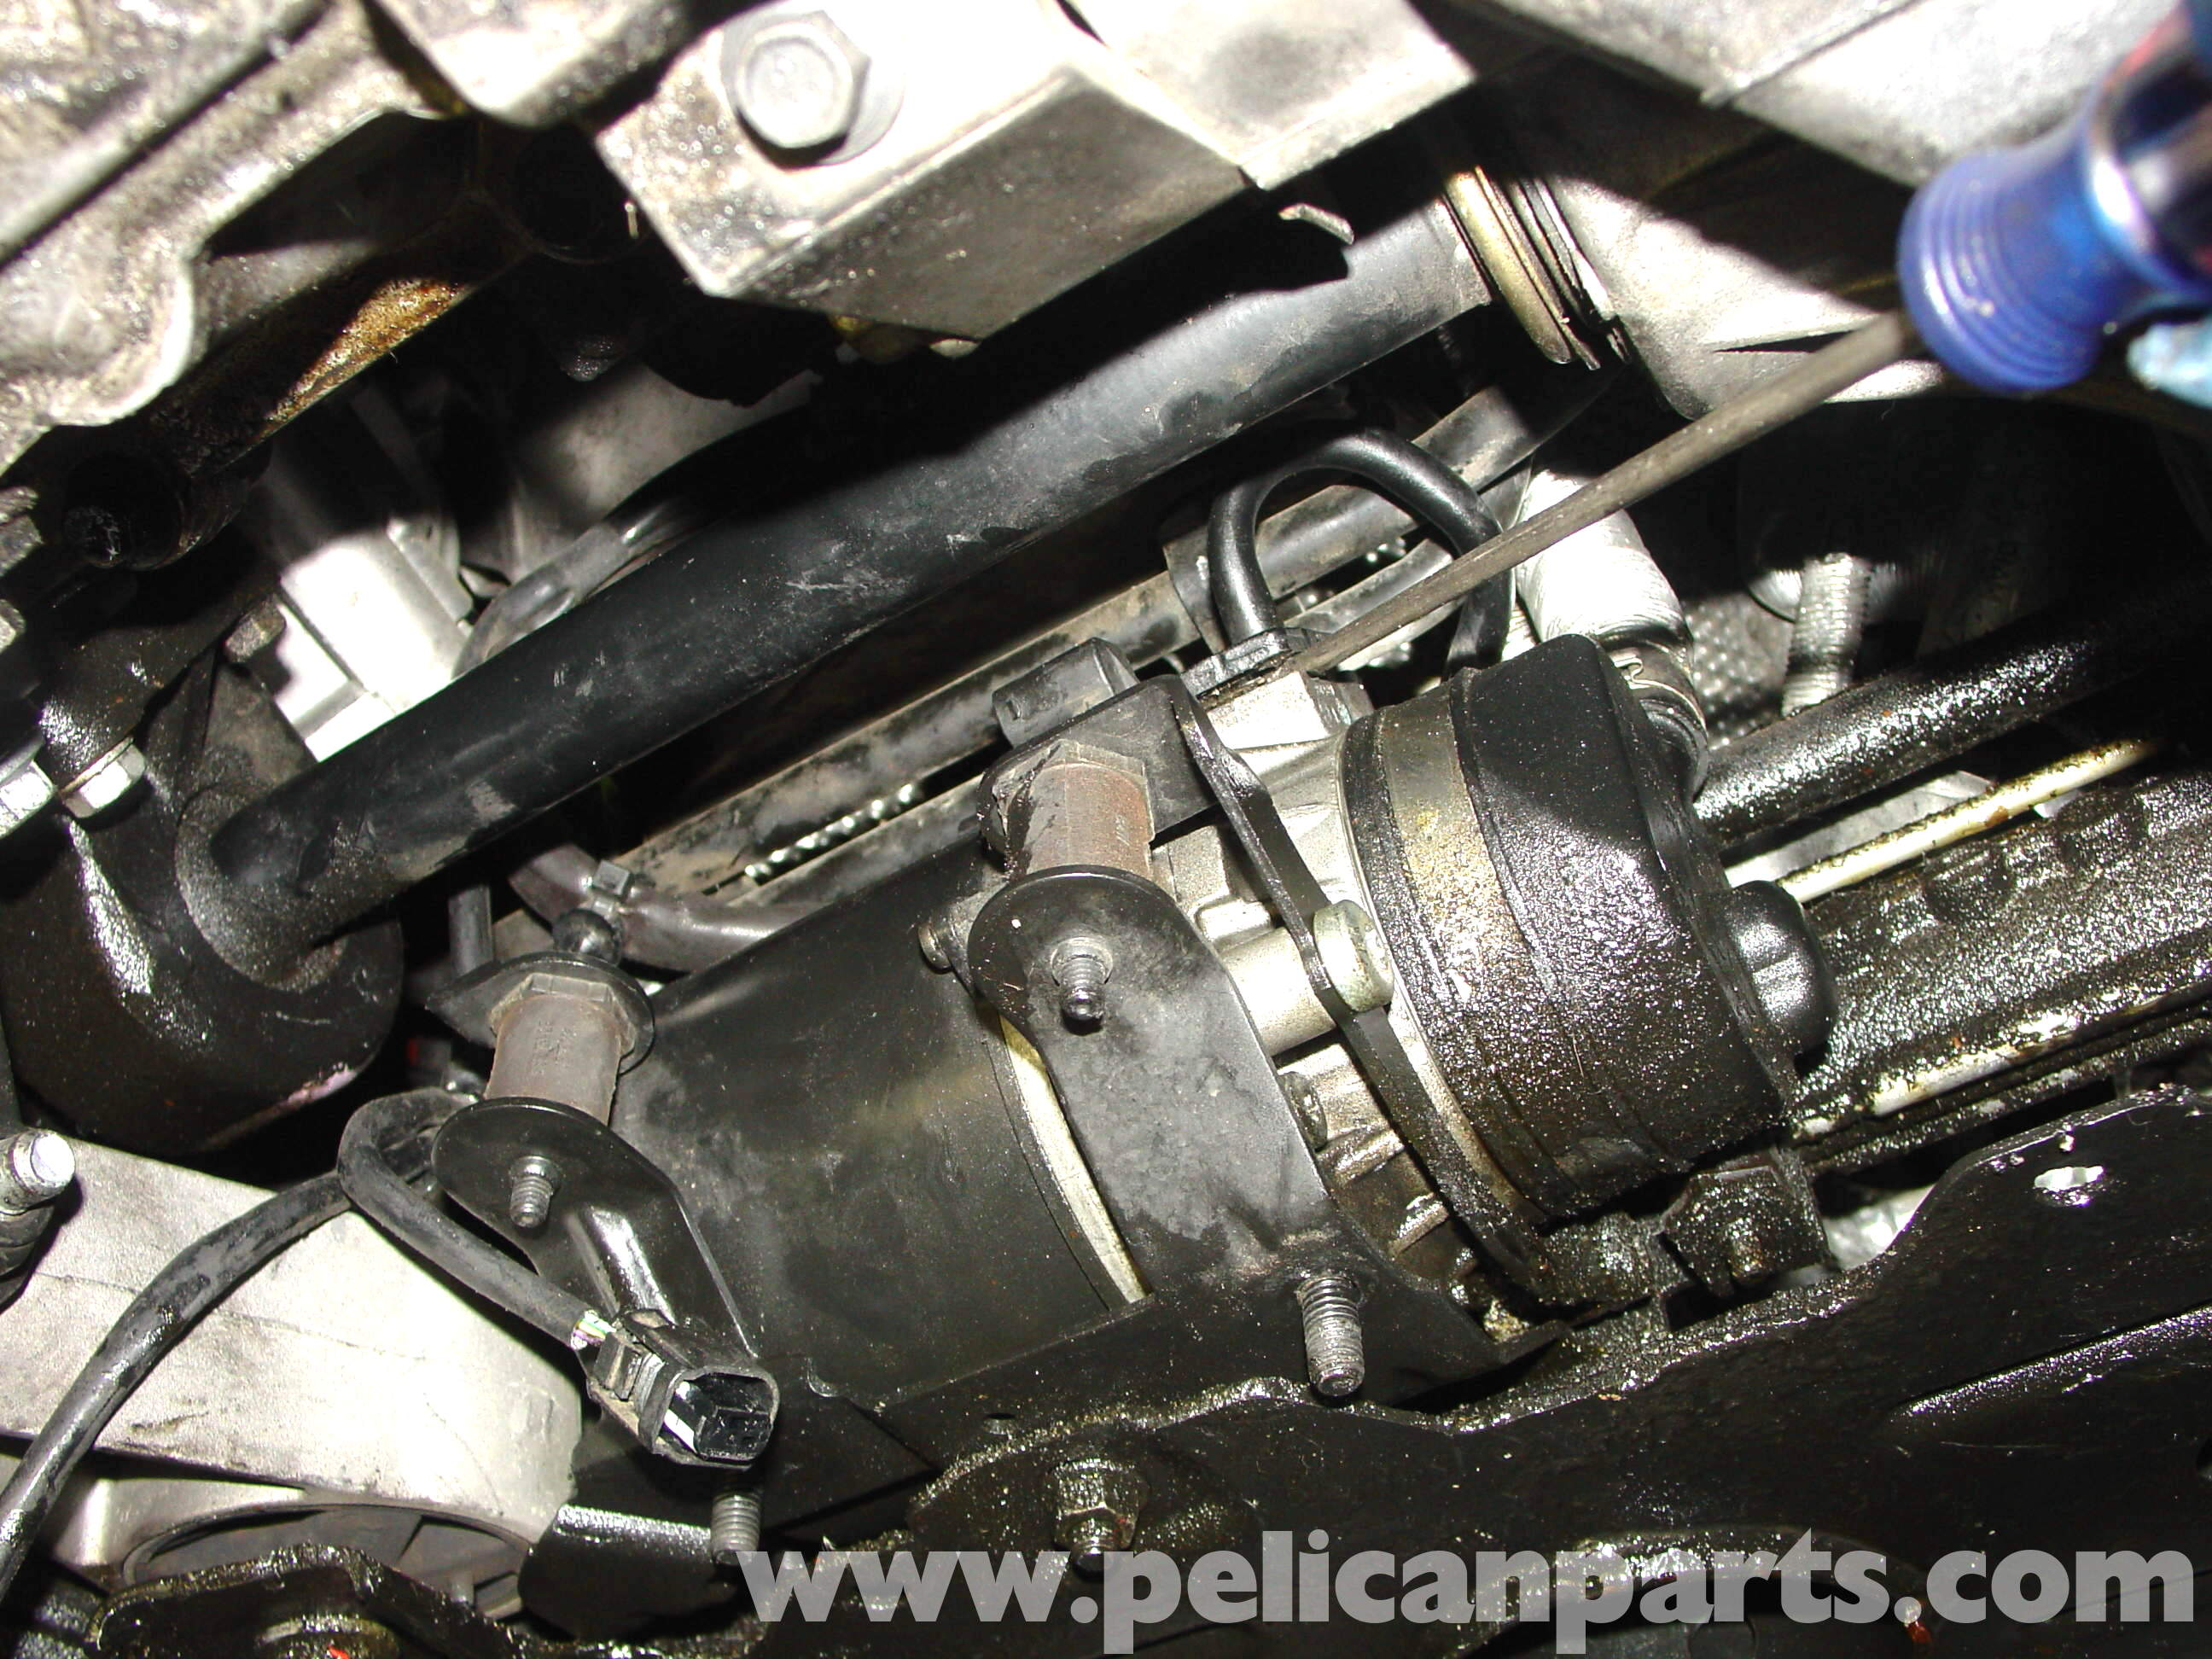 Motor Starter Wiring On 2003 Mini Cooper Library Large Image Extra Pelican Technical Article